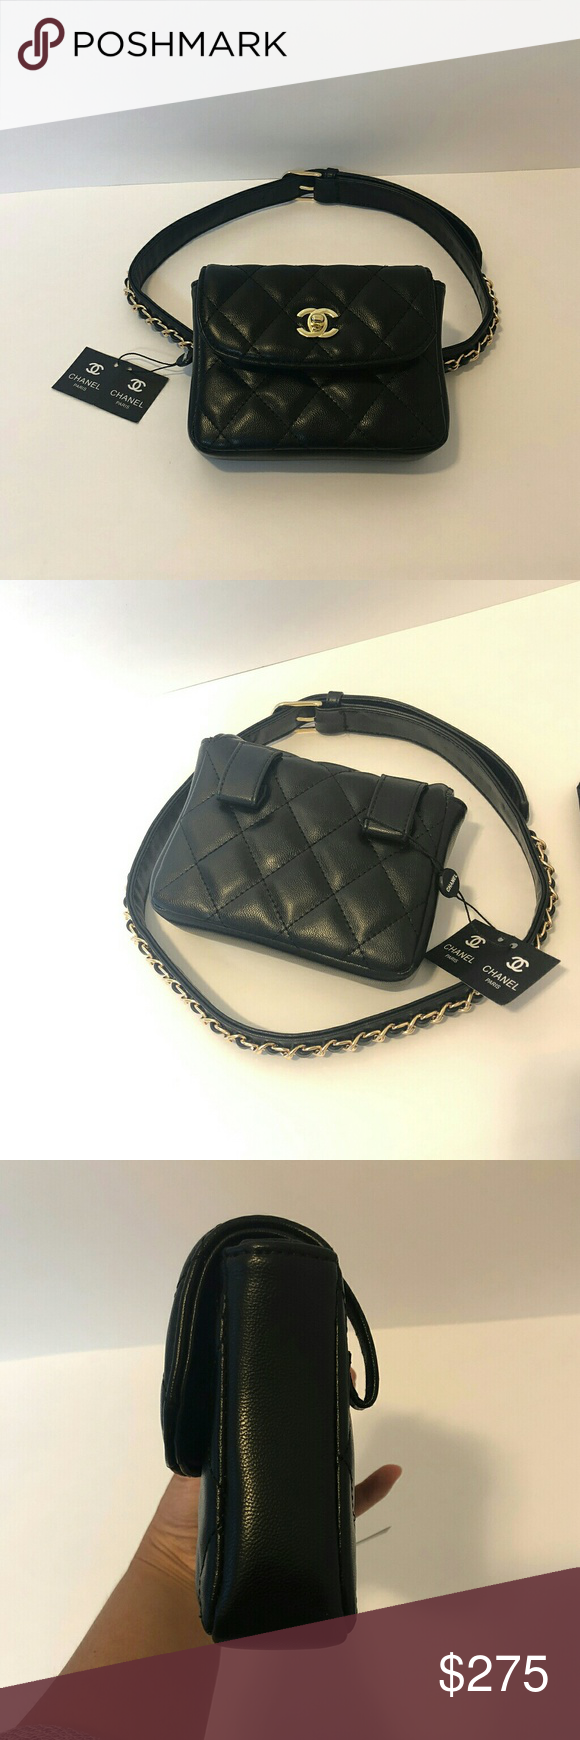 1dccdb544213 New Chanel VIP gift fanny pack belt bag Brand new Chanel VIP gift waist  fanny pack belt bag no hologram or card. Size 6.5